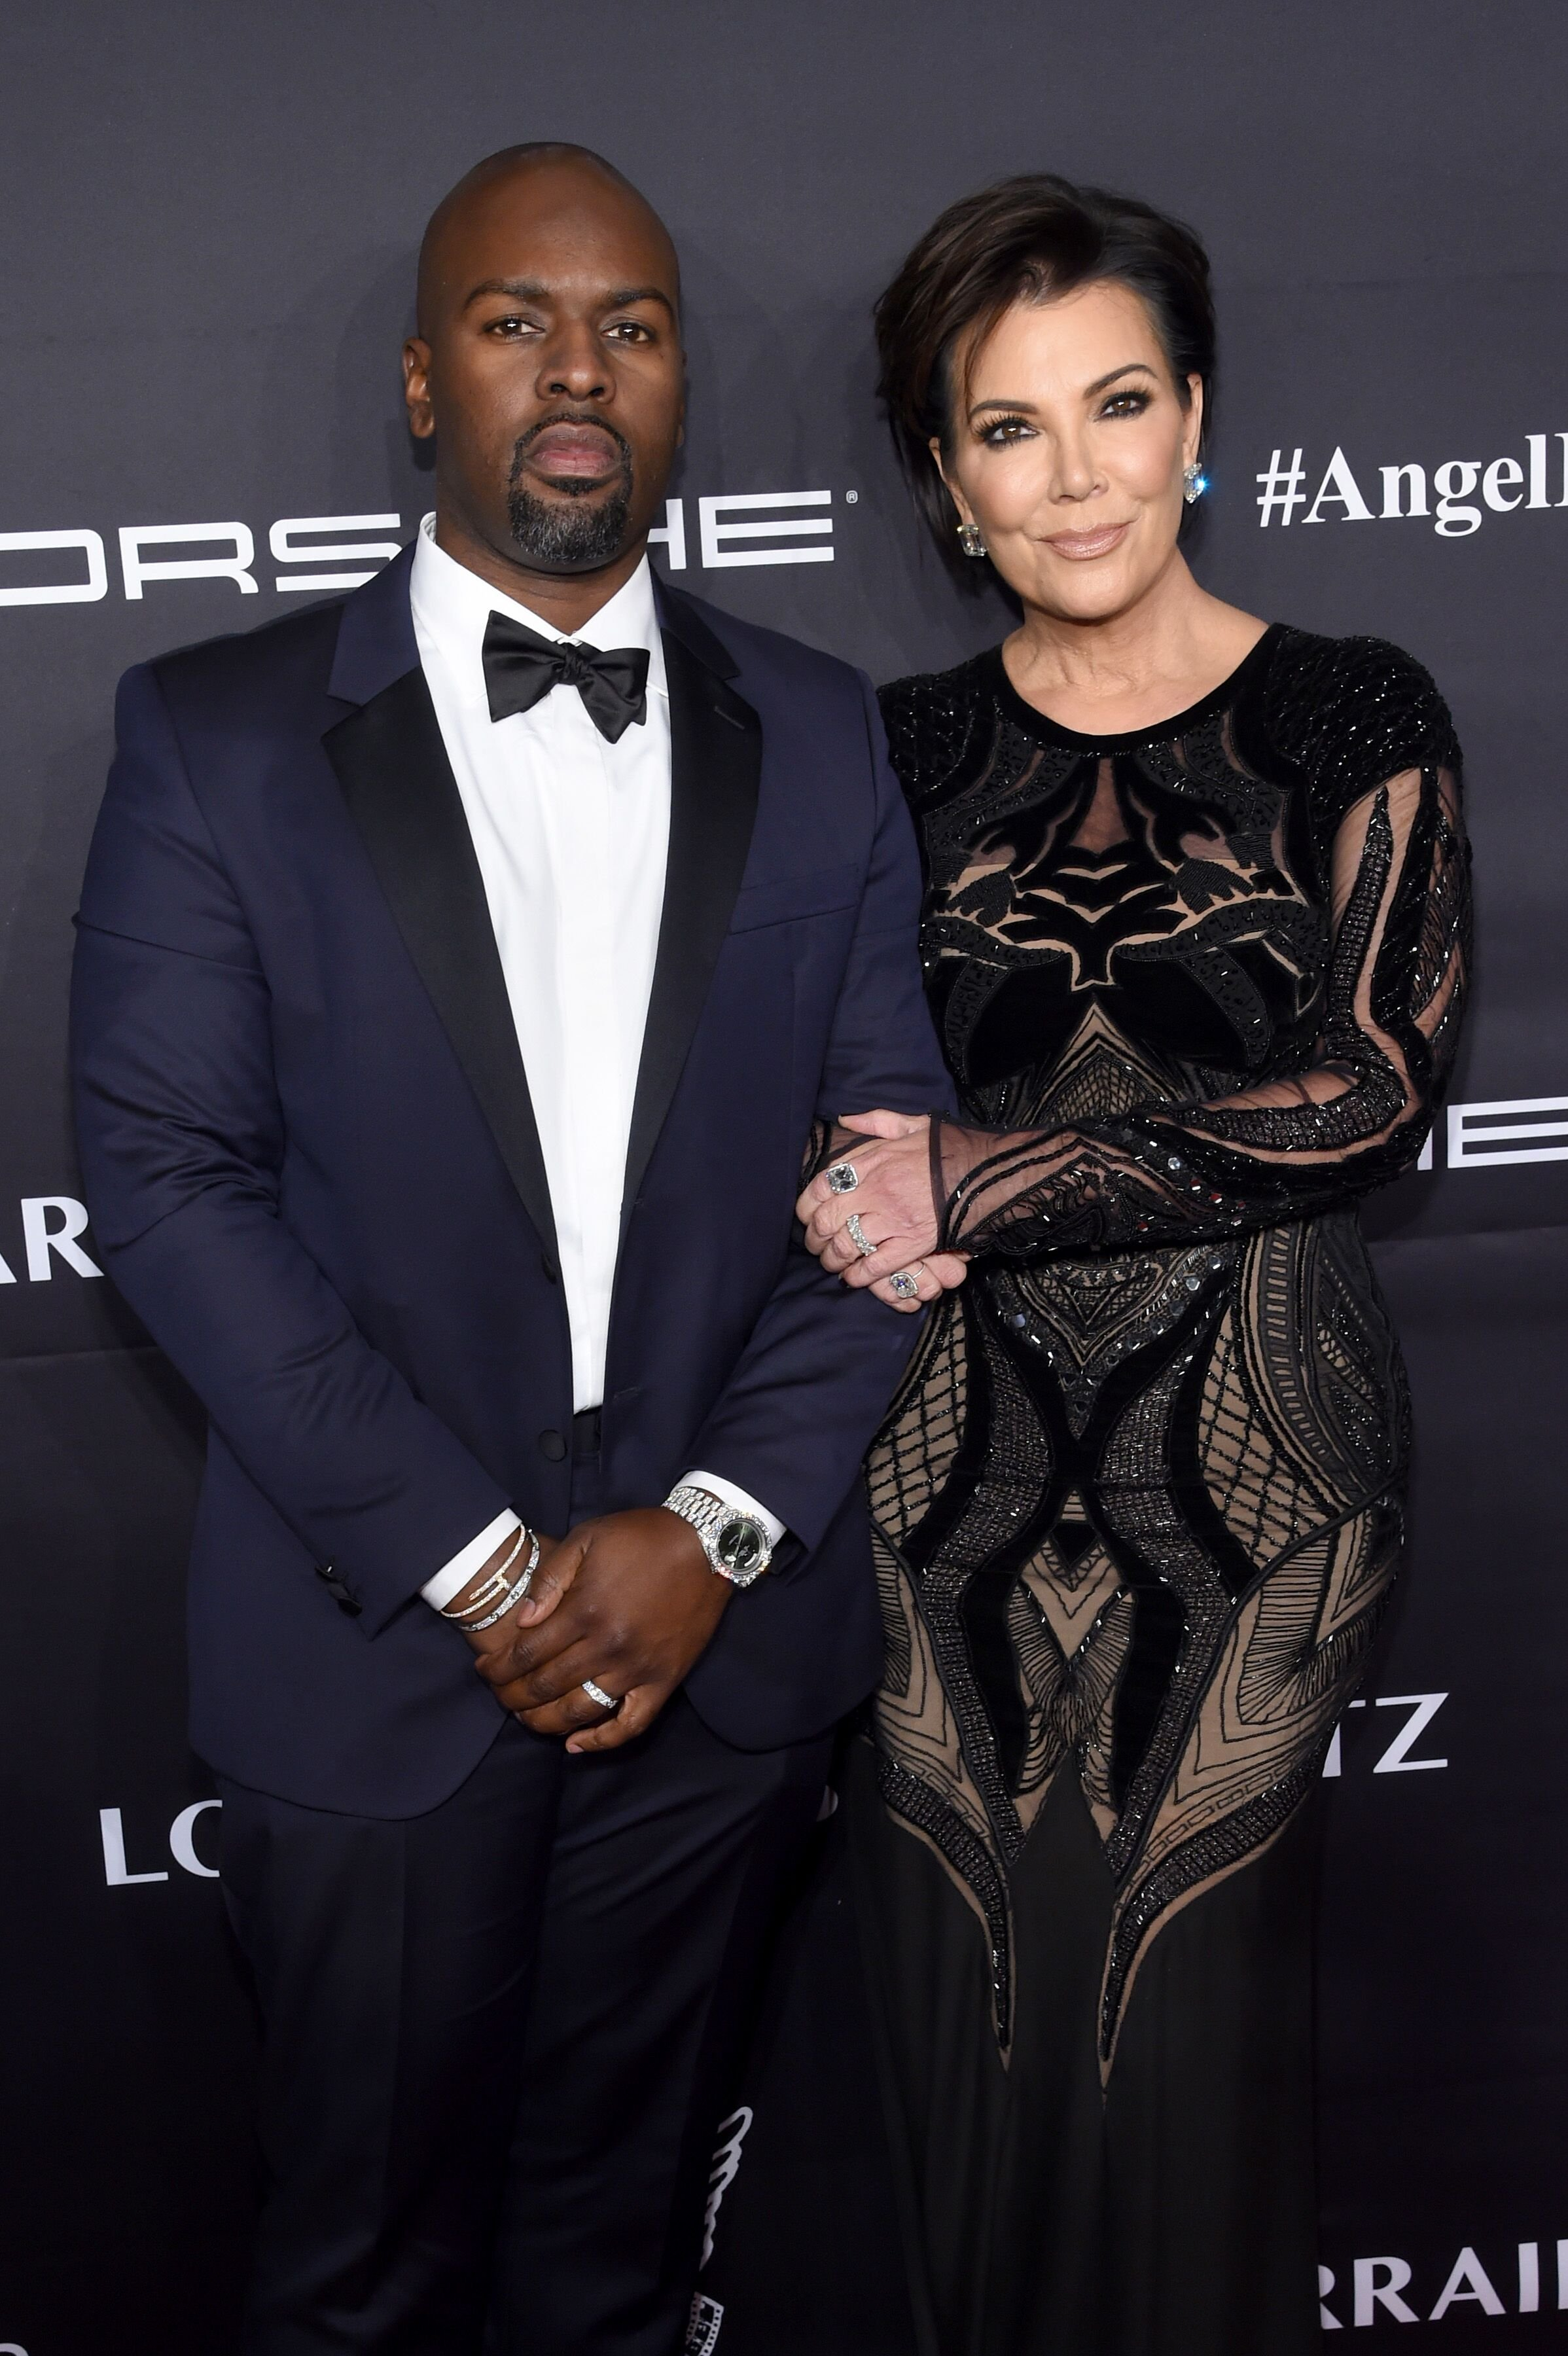 Kris Jenner and boyfriend Corey Gamble at the Angel Ball / Source: Getty Images